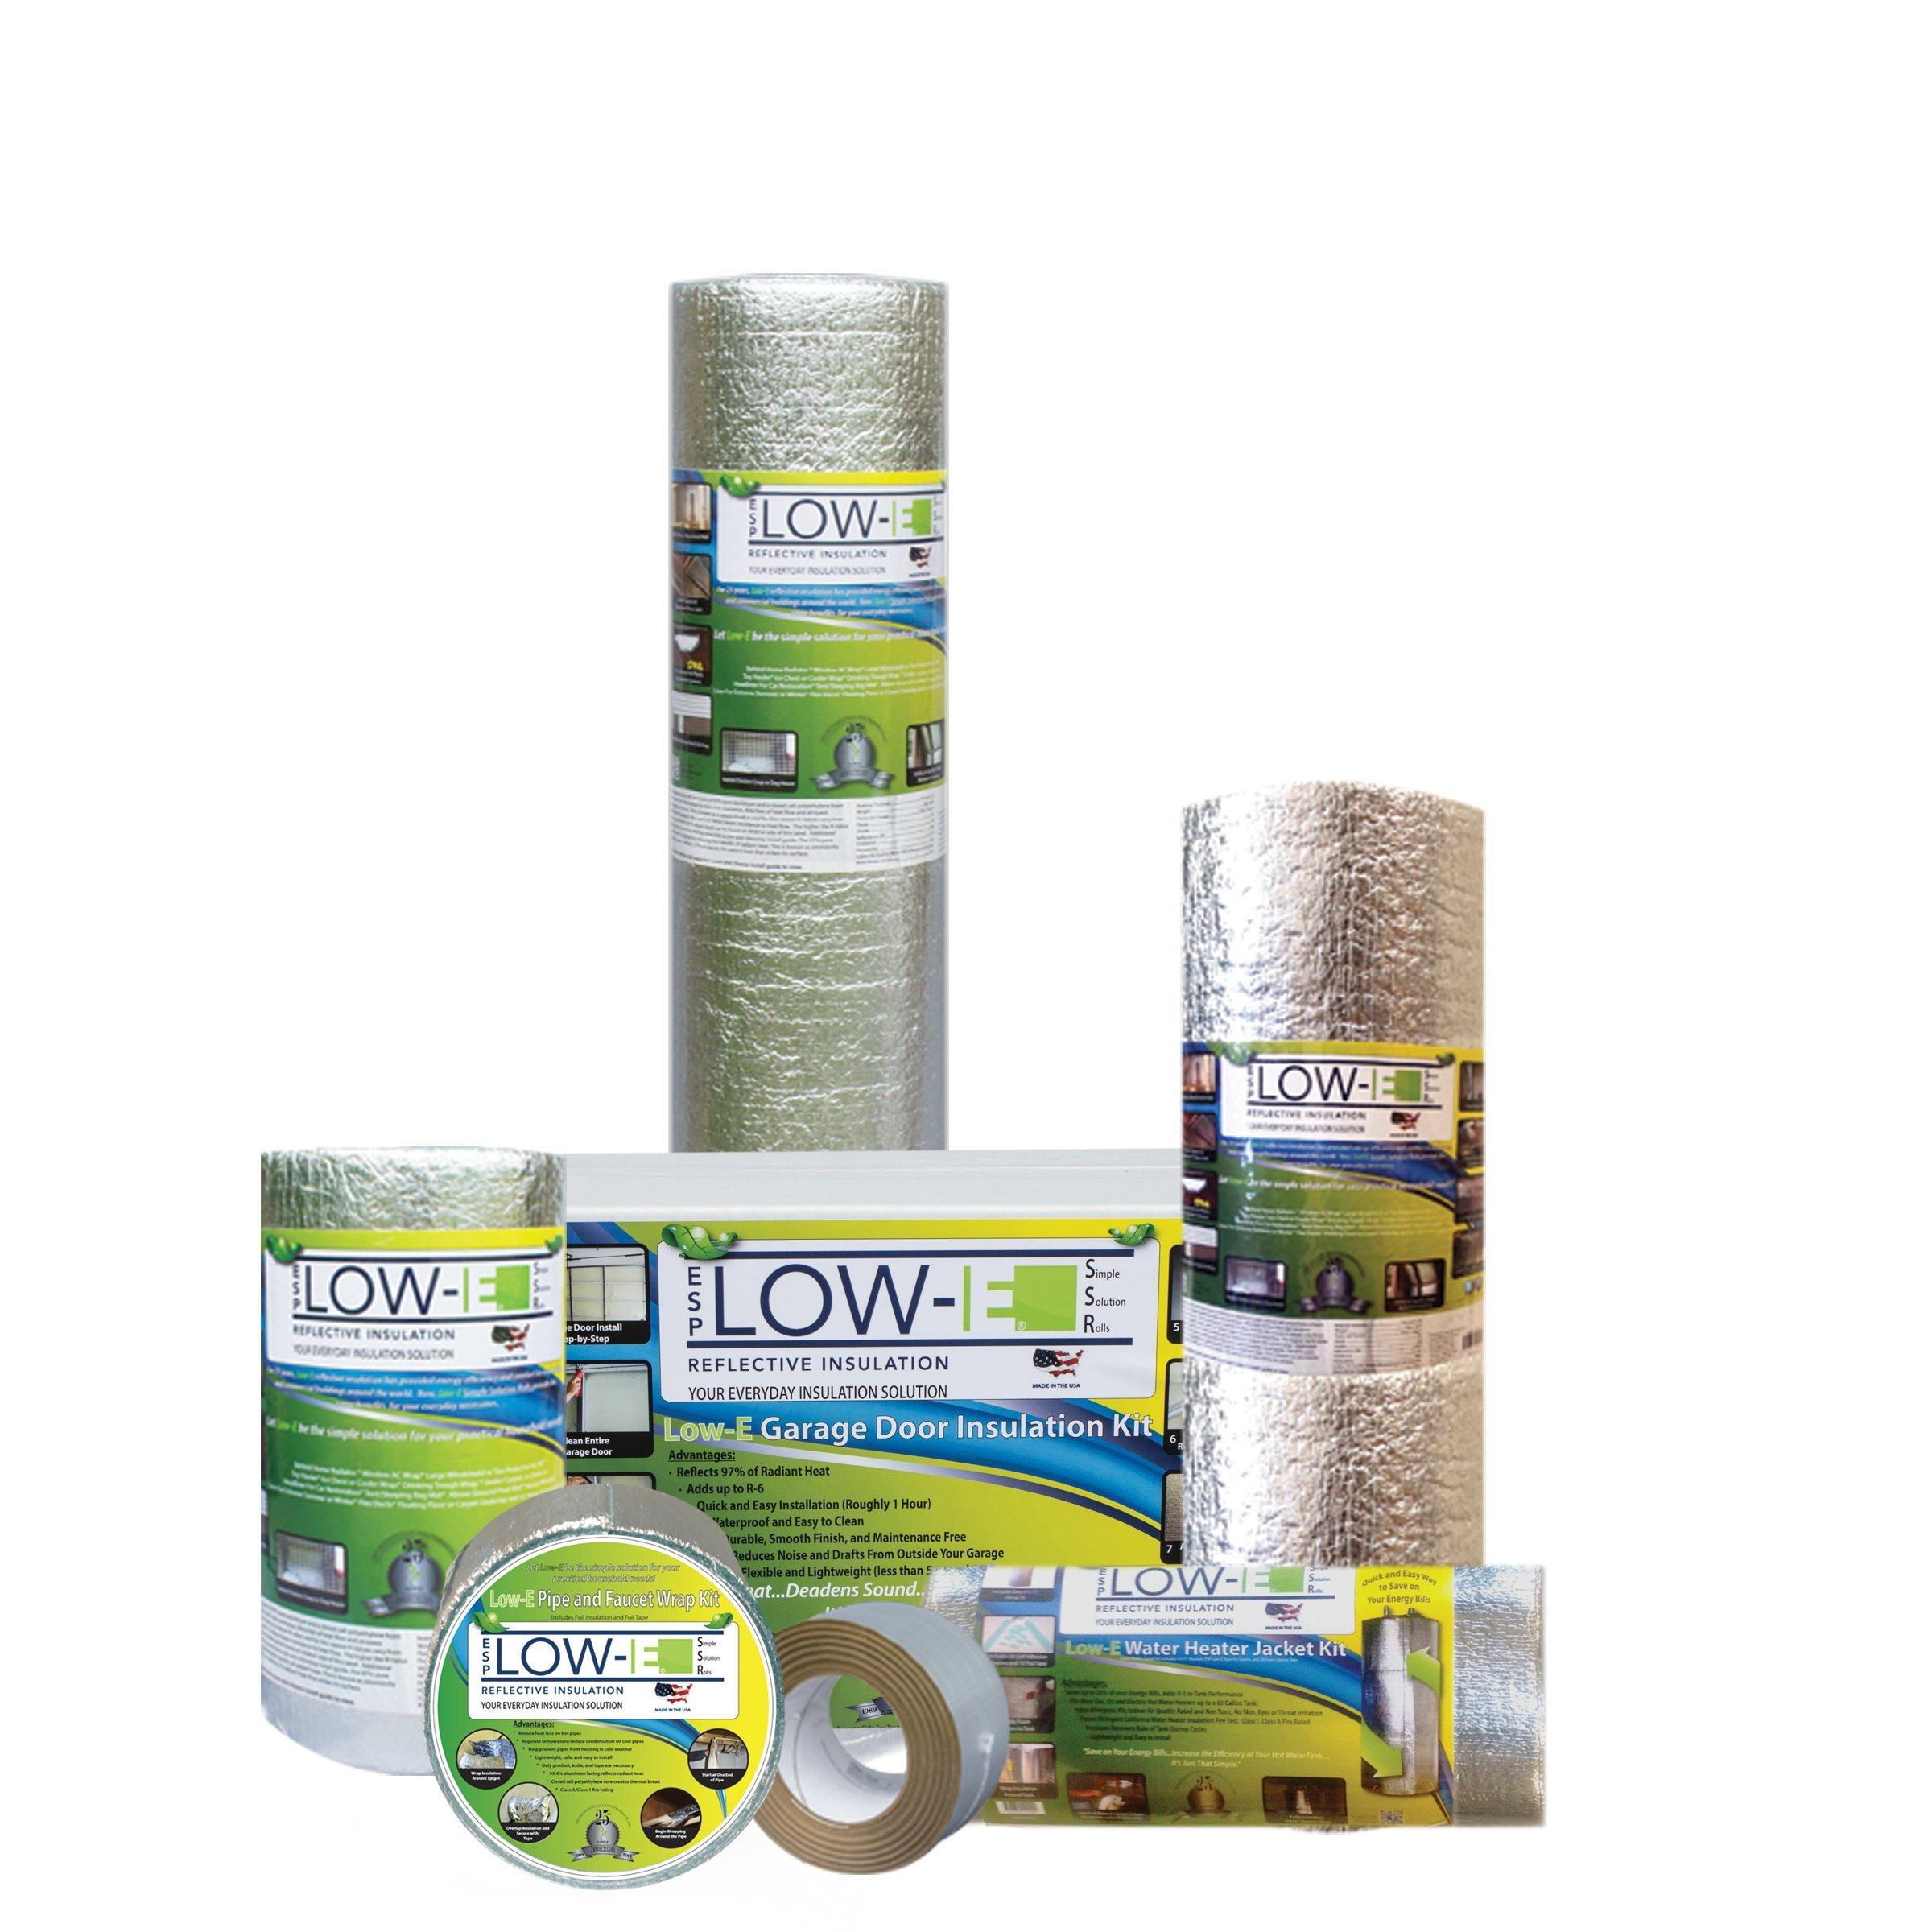 2 PACK Wholesale Lot: ESP Low-E® SSR Reflective Foam Core Insulation Kit: 2 Rolls (Size 24''x50') Includes 50' Foil Tape per roll, Knife & Squeegee. Multipurpose Home Insulation For Your Building Project or Just Every Day Household Needs.